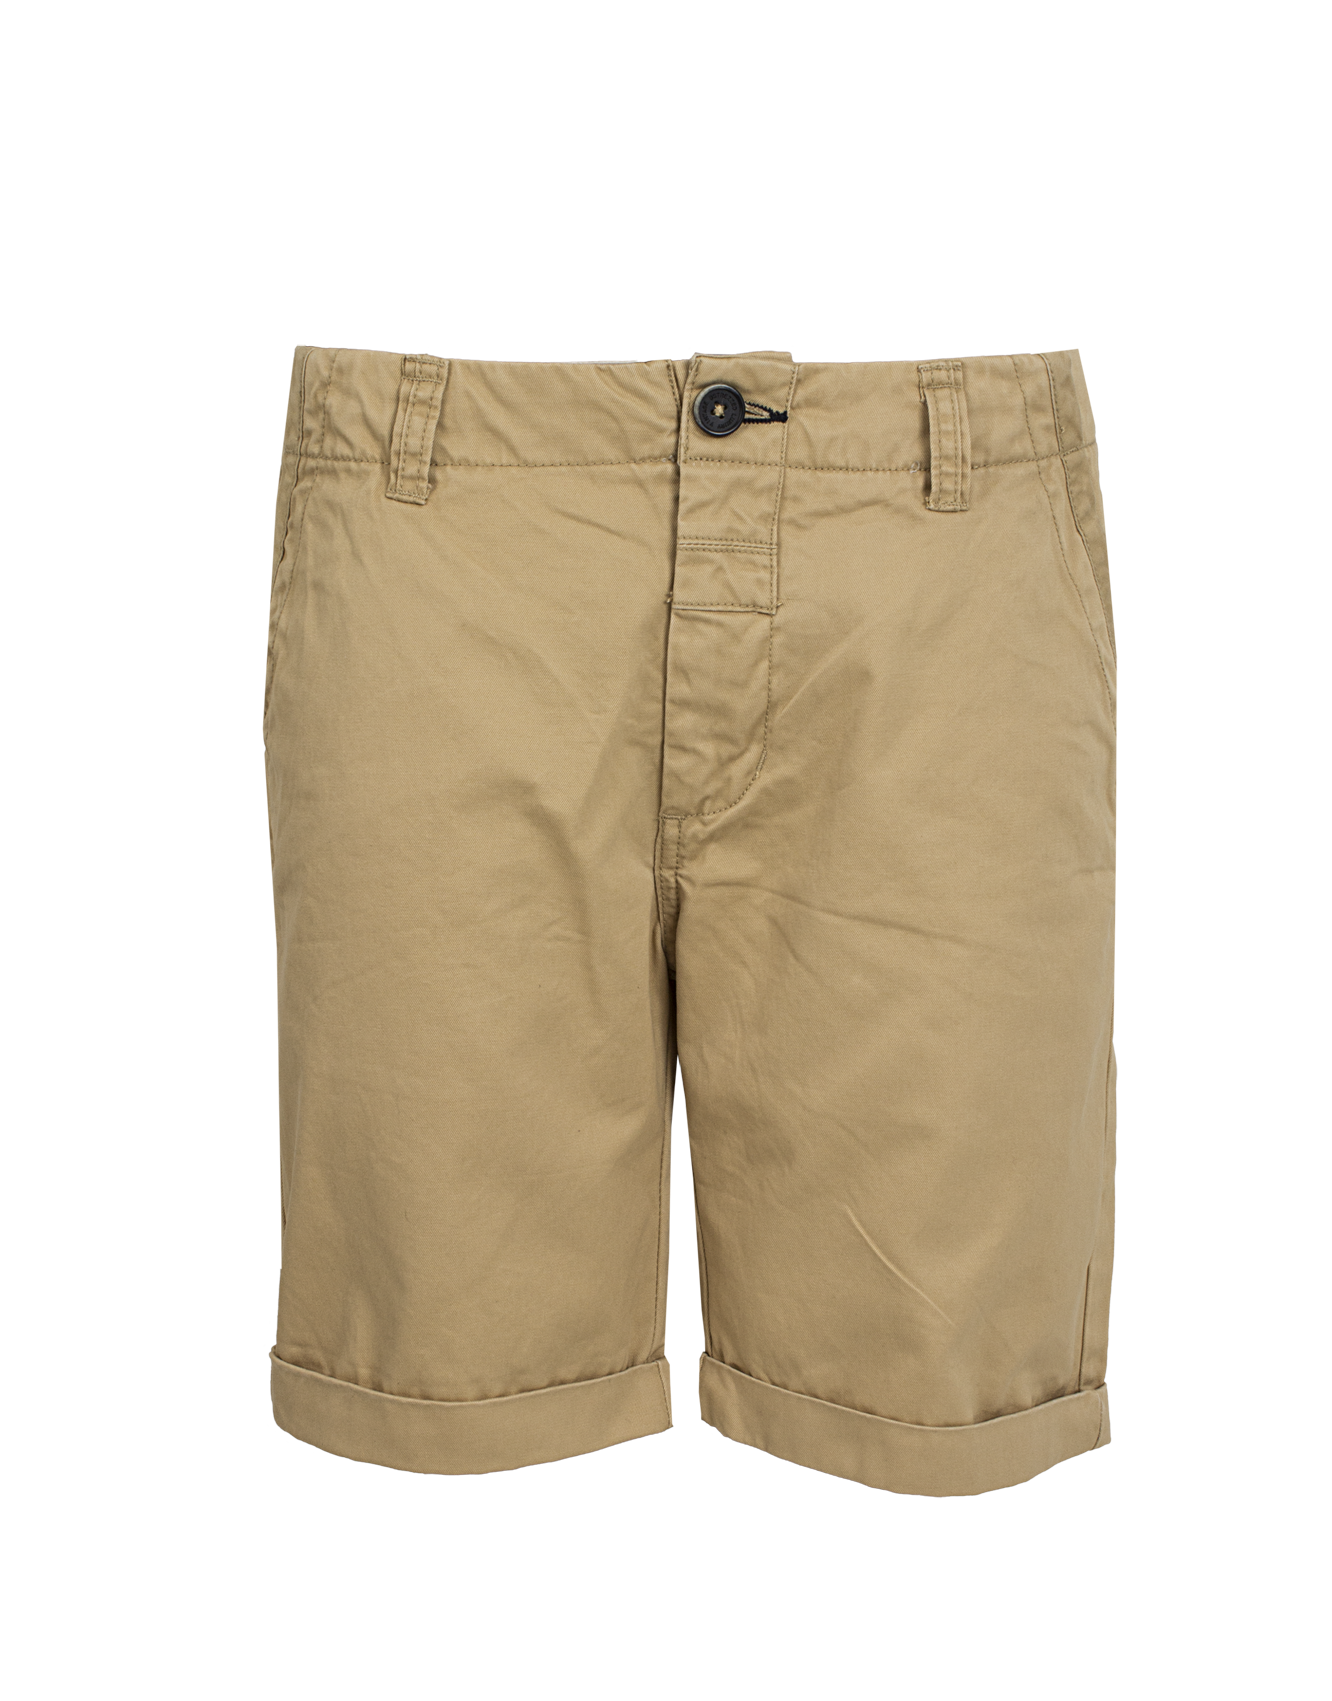 Bermuda Shorts Png - Bermuda shorts Khaki Pants Beige - twill png download - 1332*1701 ...